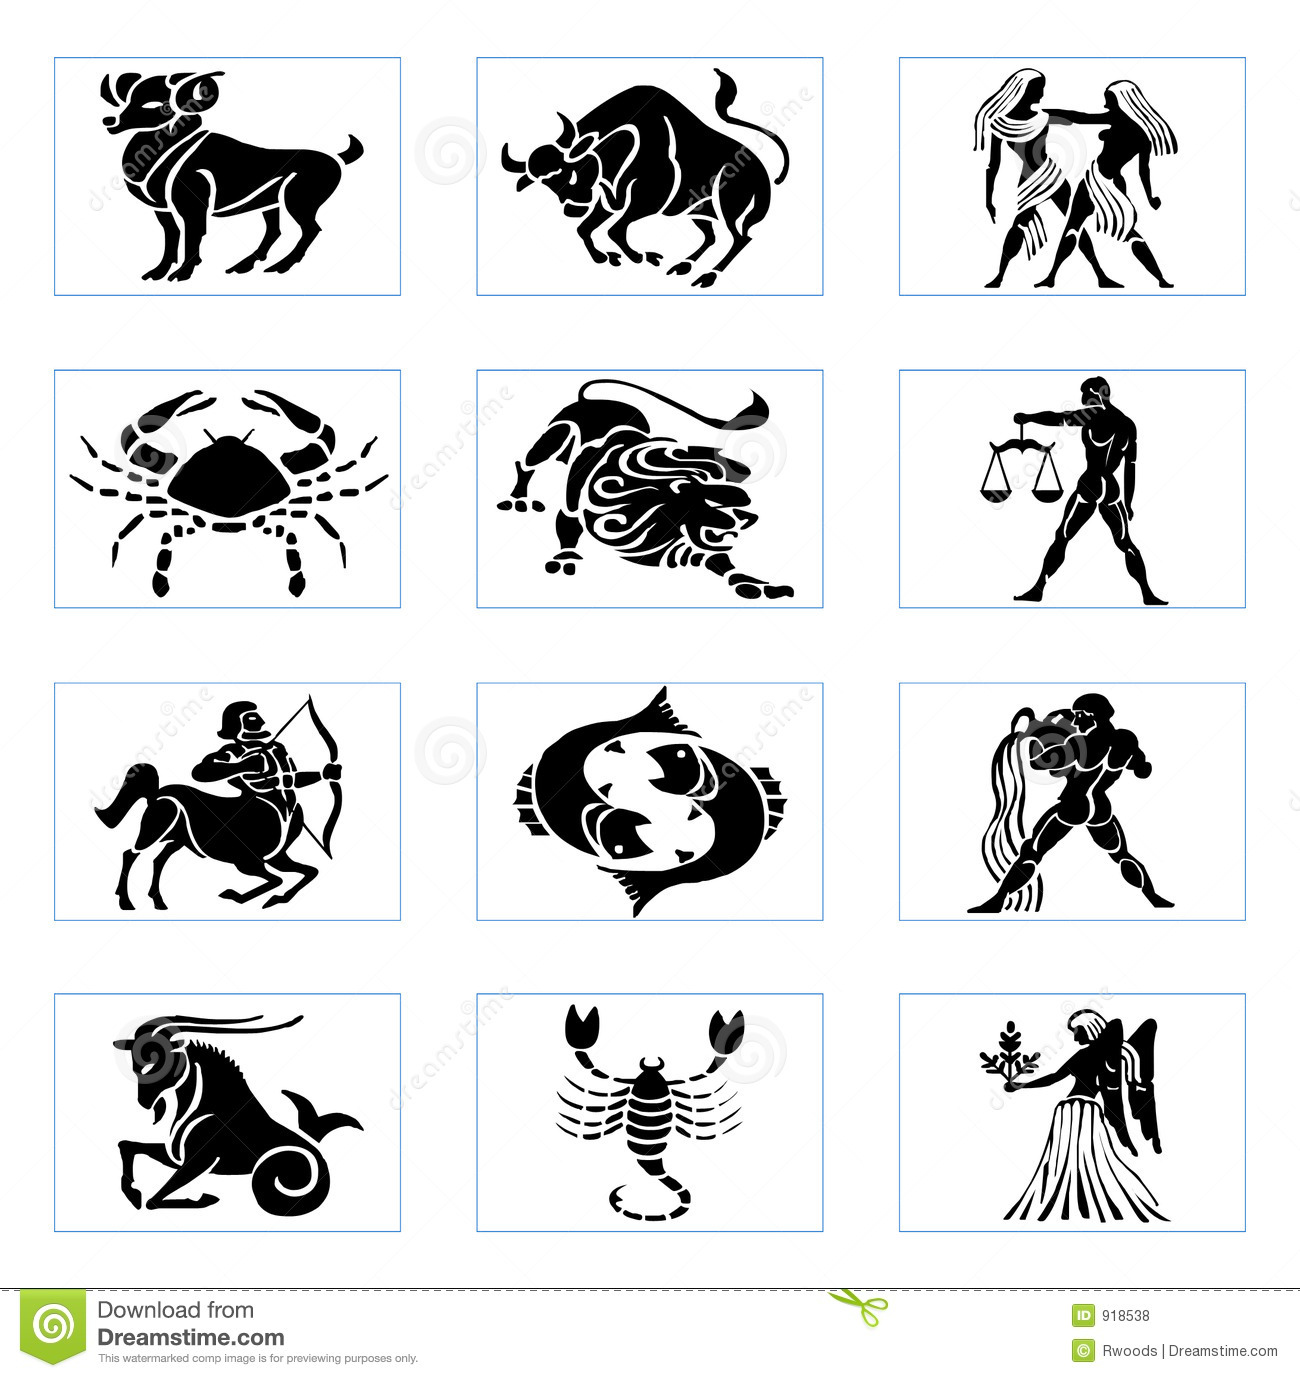 Zodiac Sign clipart #16, Download drawings